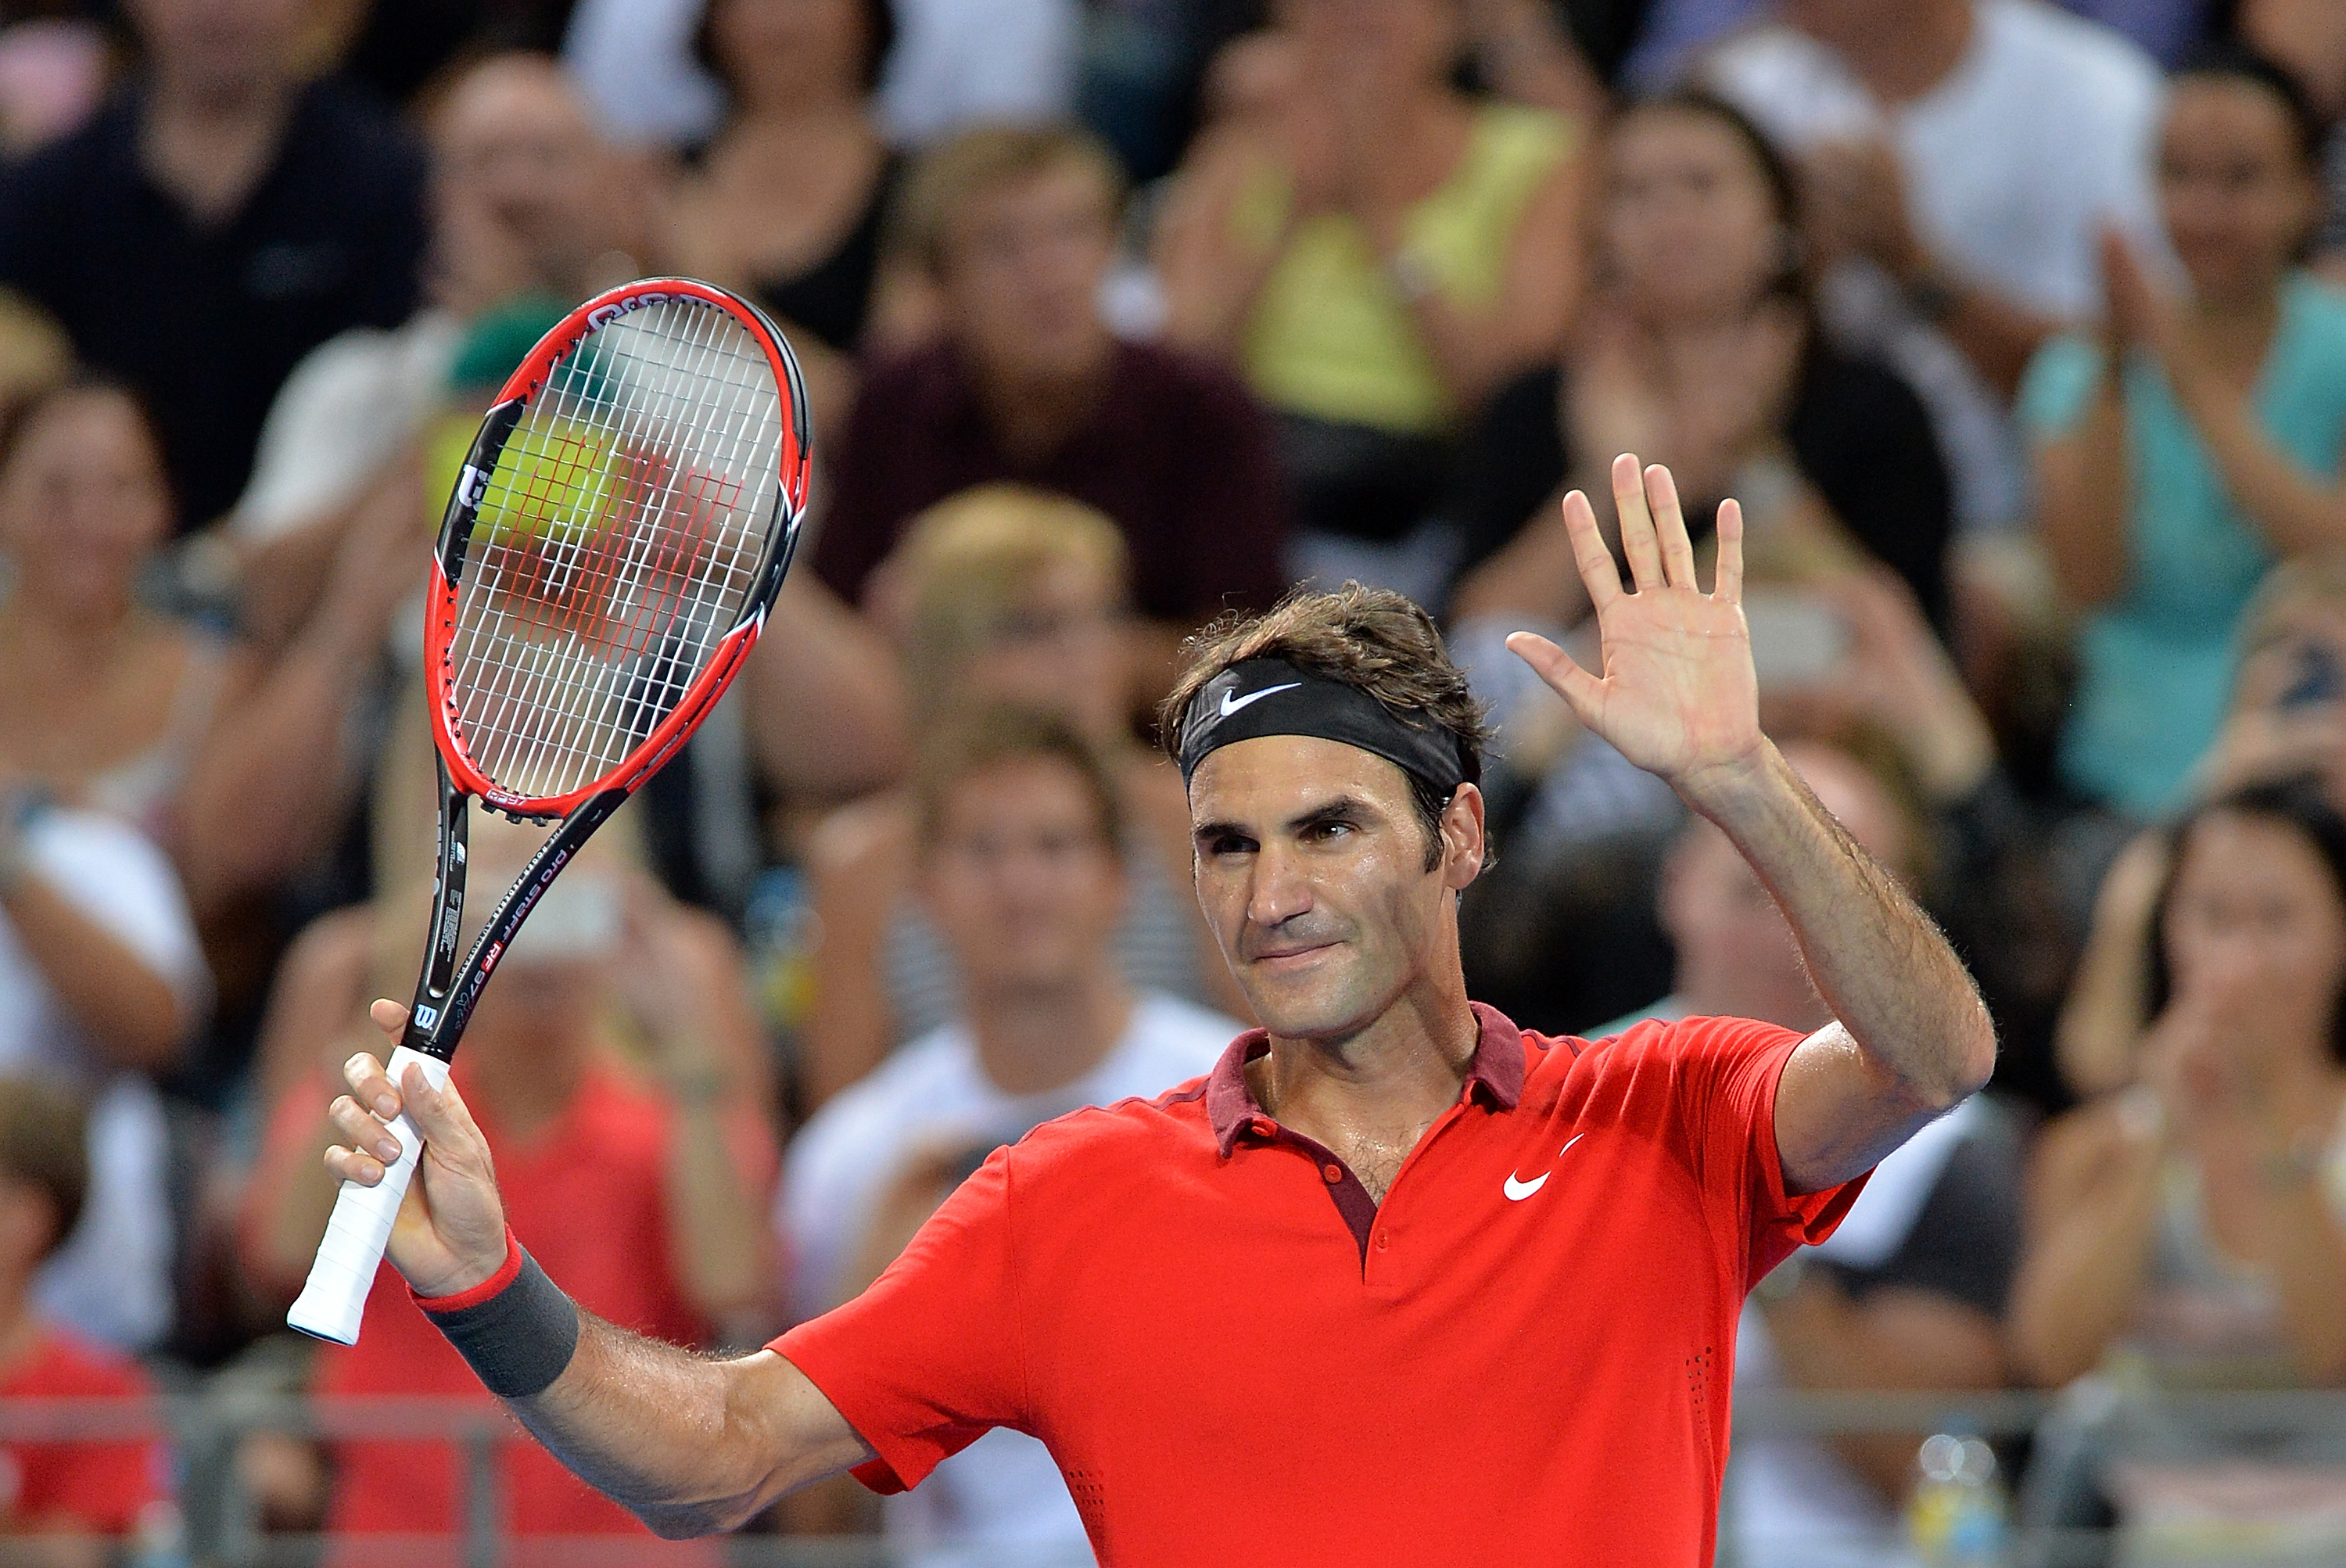 What to know about tennis in 2015 before the Australian Open